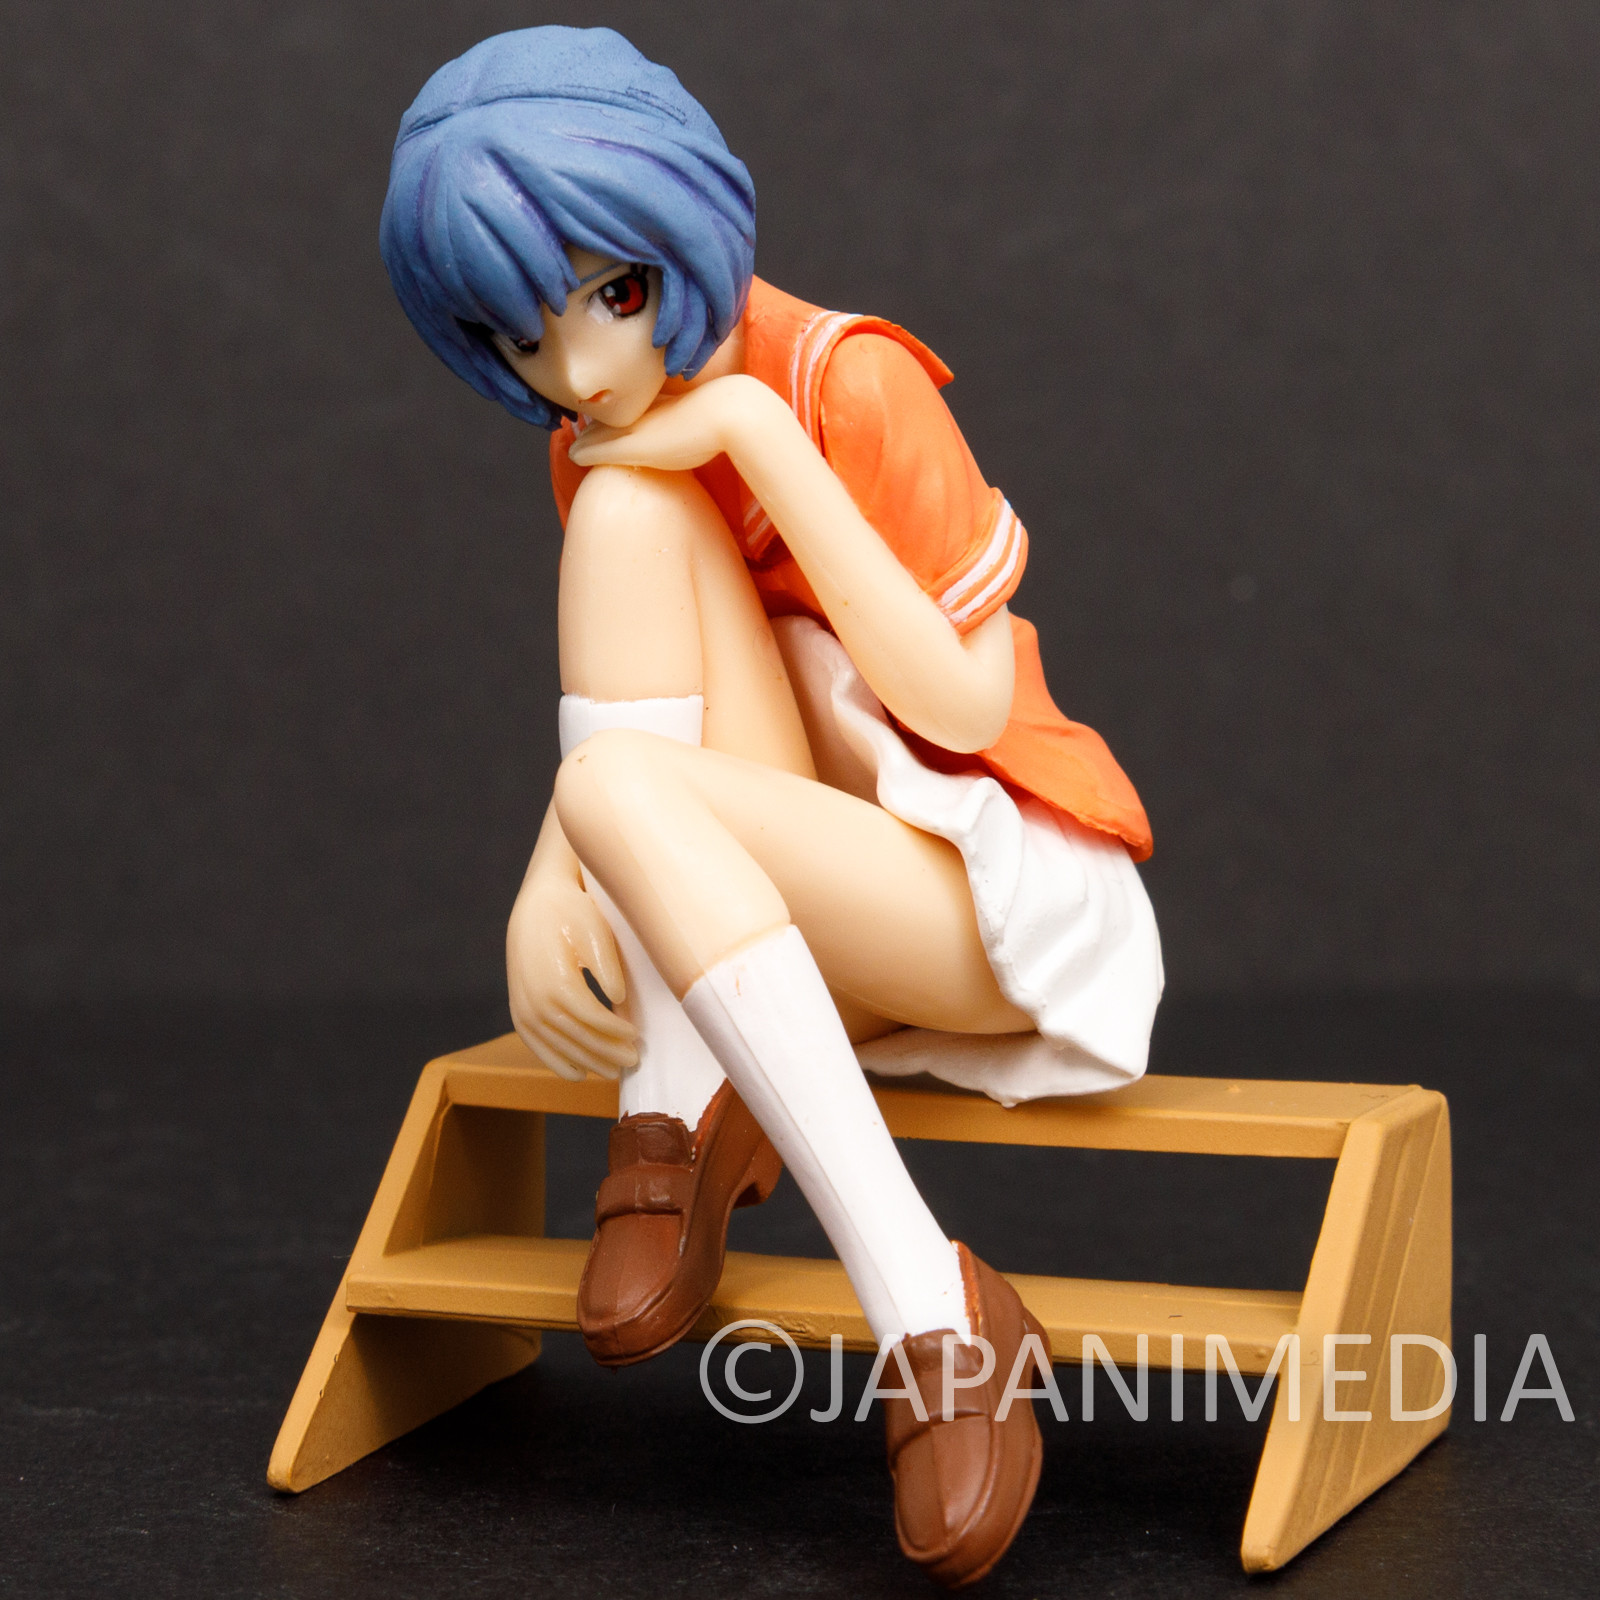 Evangelion Rei Ayanami Casual Clothes On the Stairs Figure BANDAI JAPAN